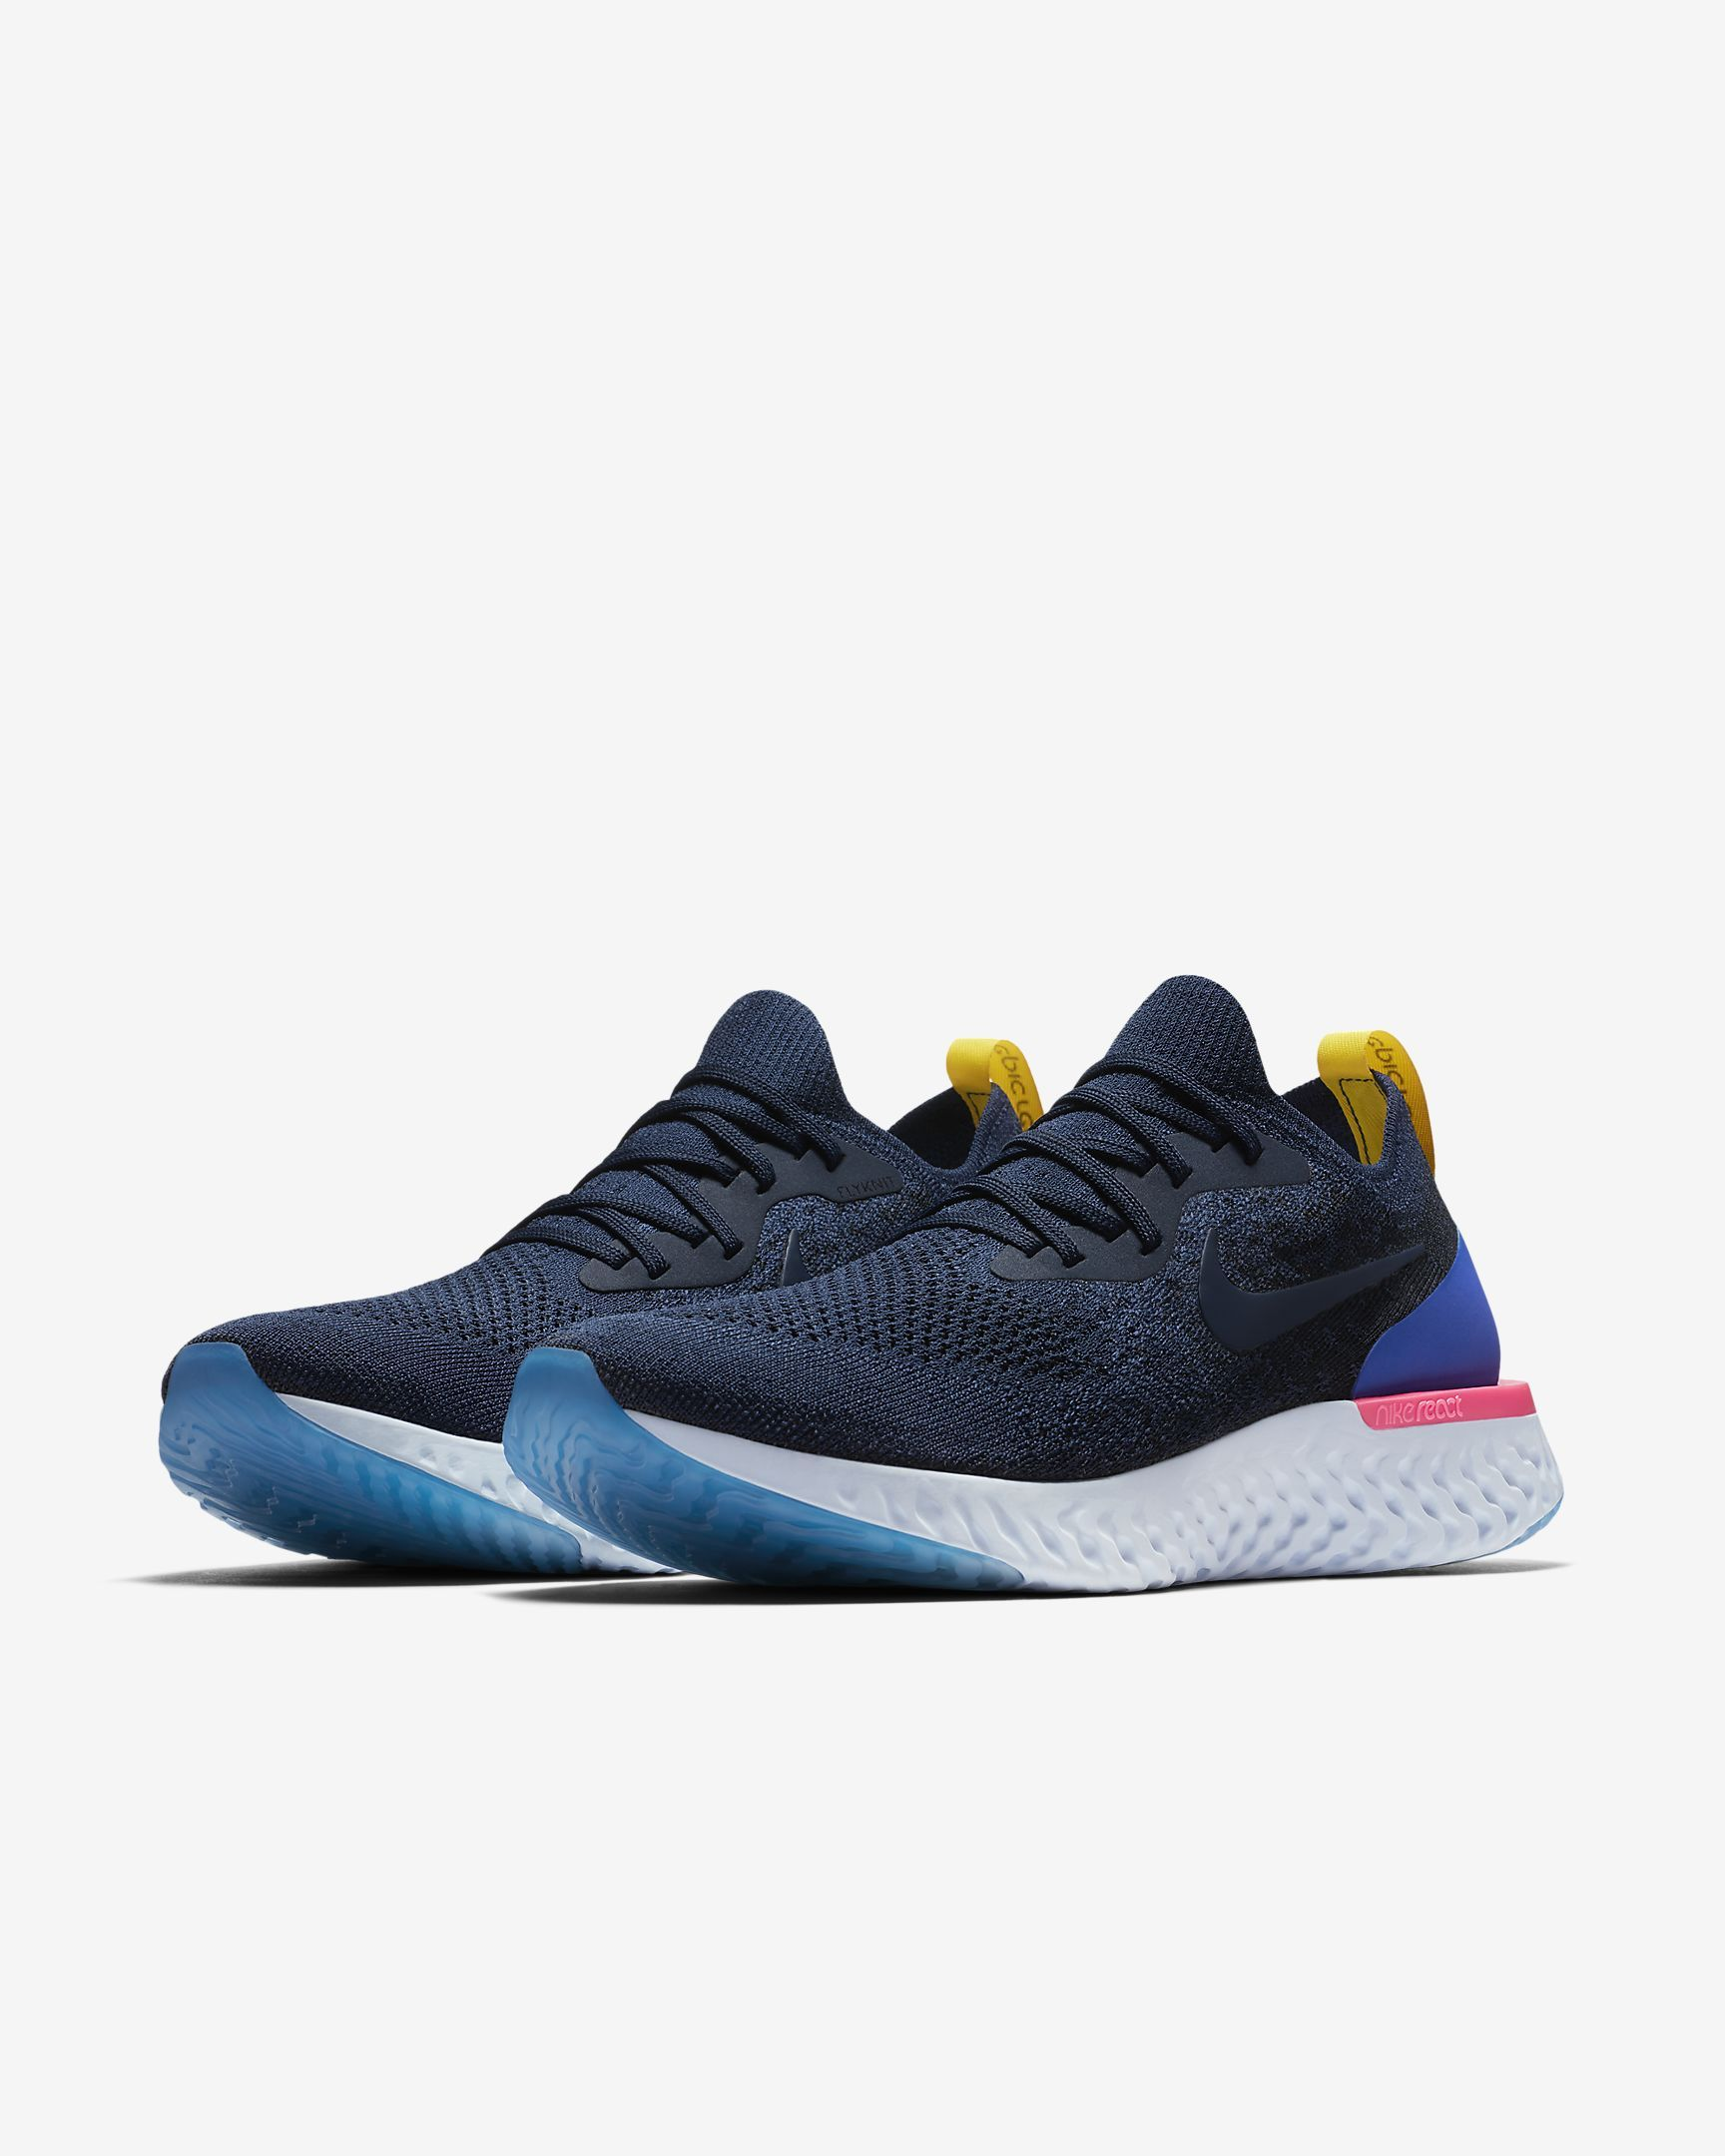 659675b77940 Nike Epic React Flyknit Men s Running Shoe